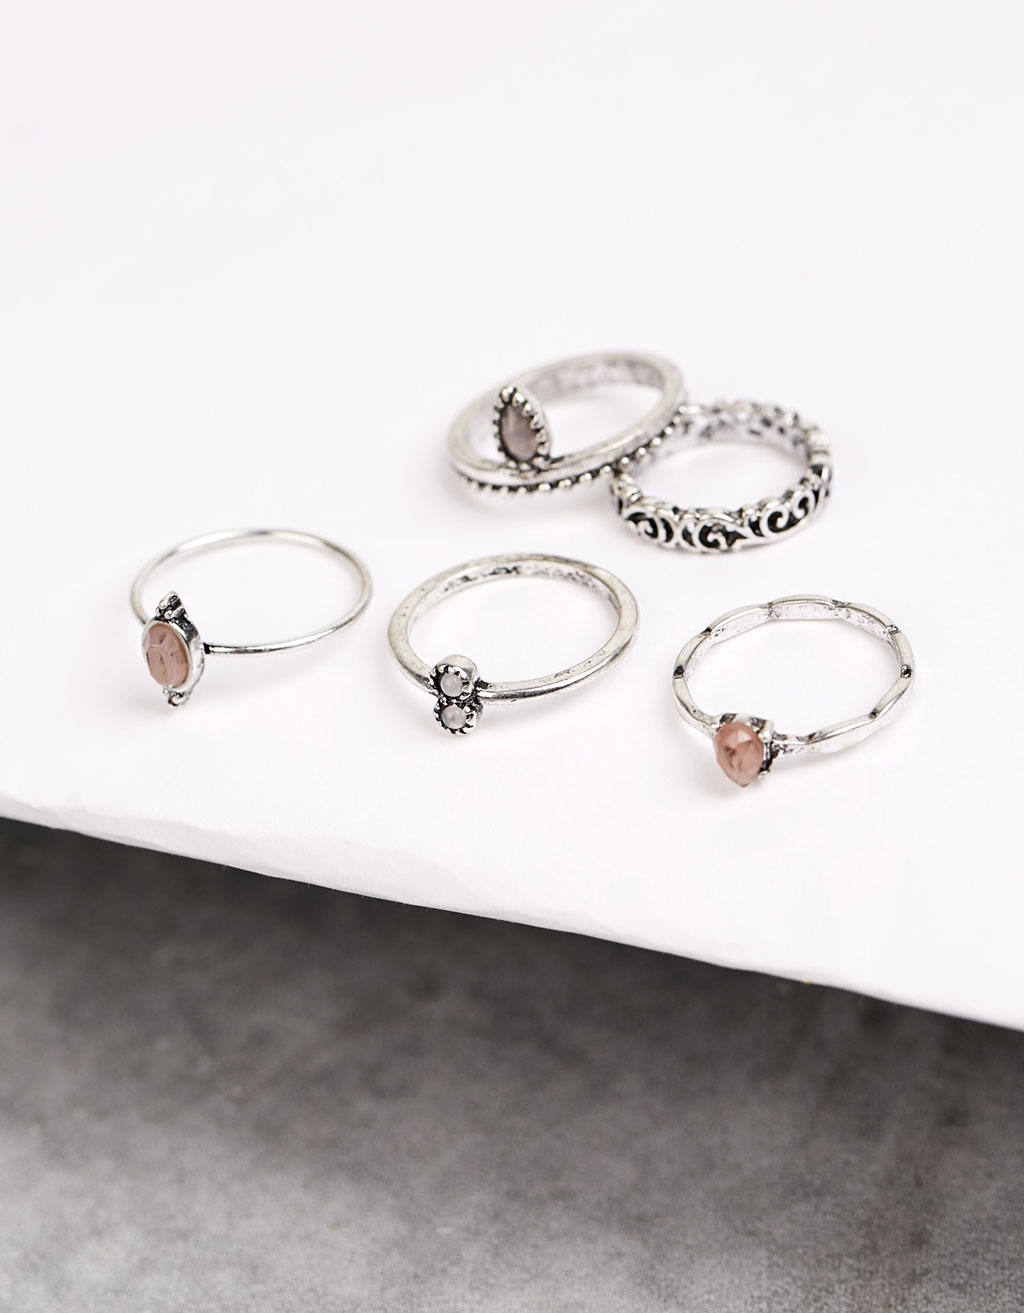 Silver rings (set)